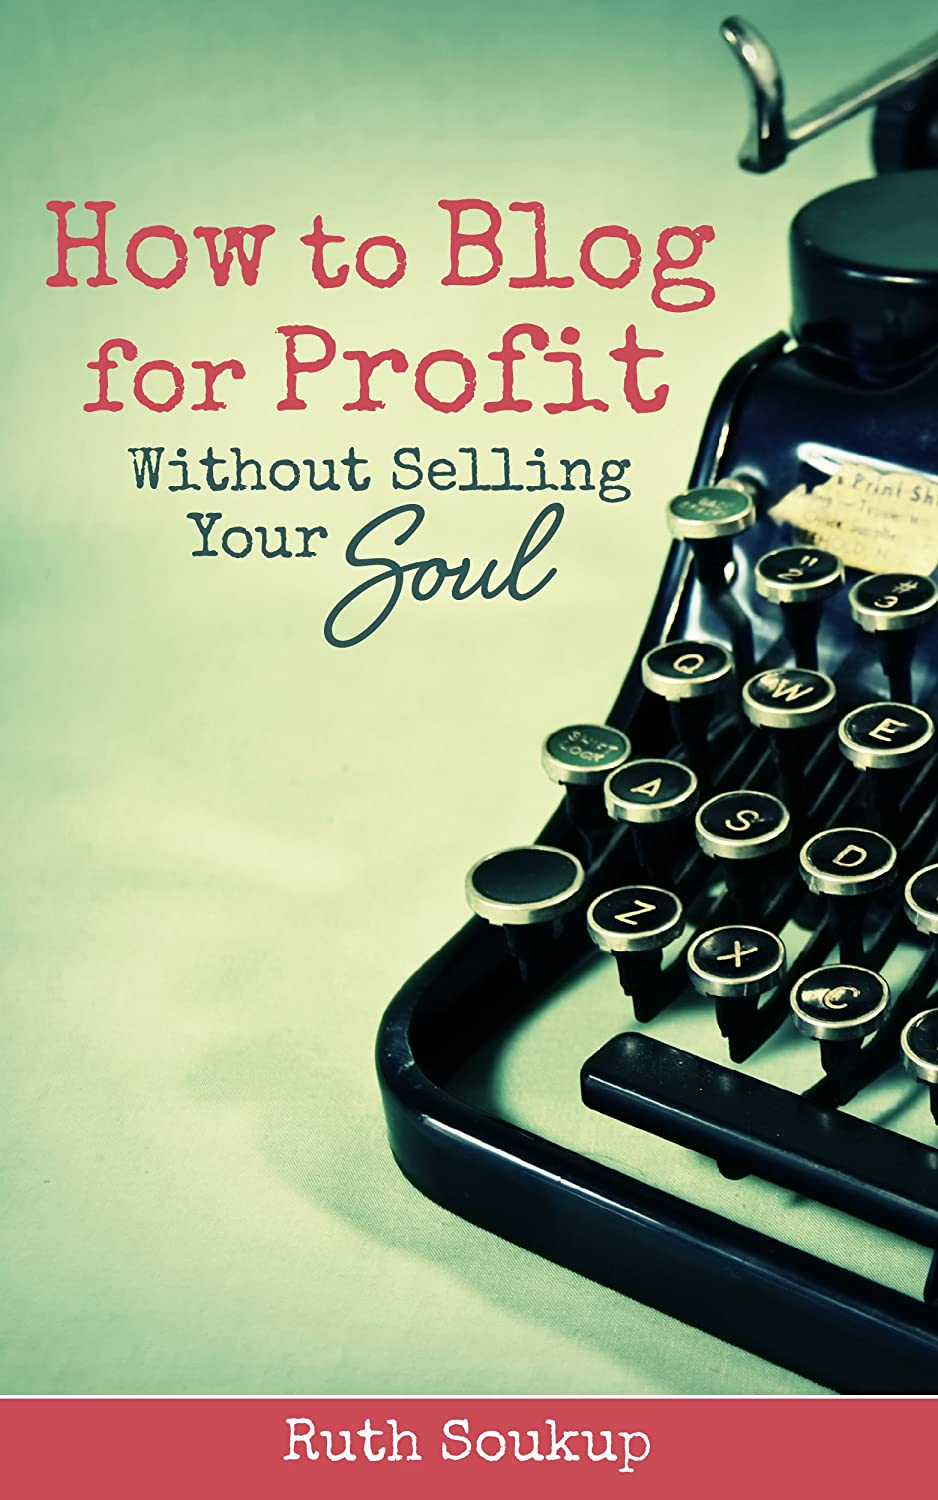 How to Blog for Profit {Without Selling Your Soul} by Ruth Soukup